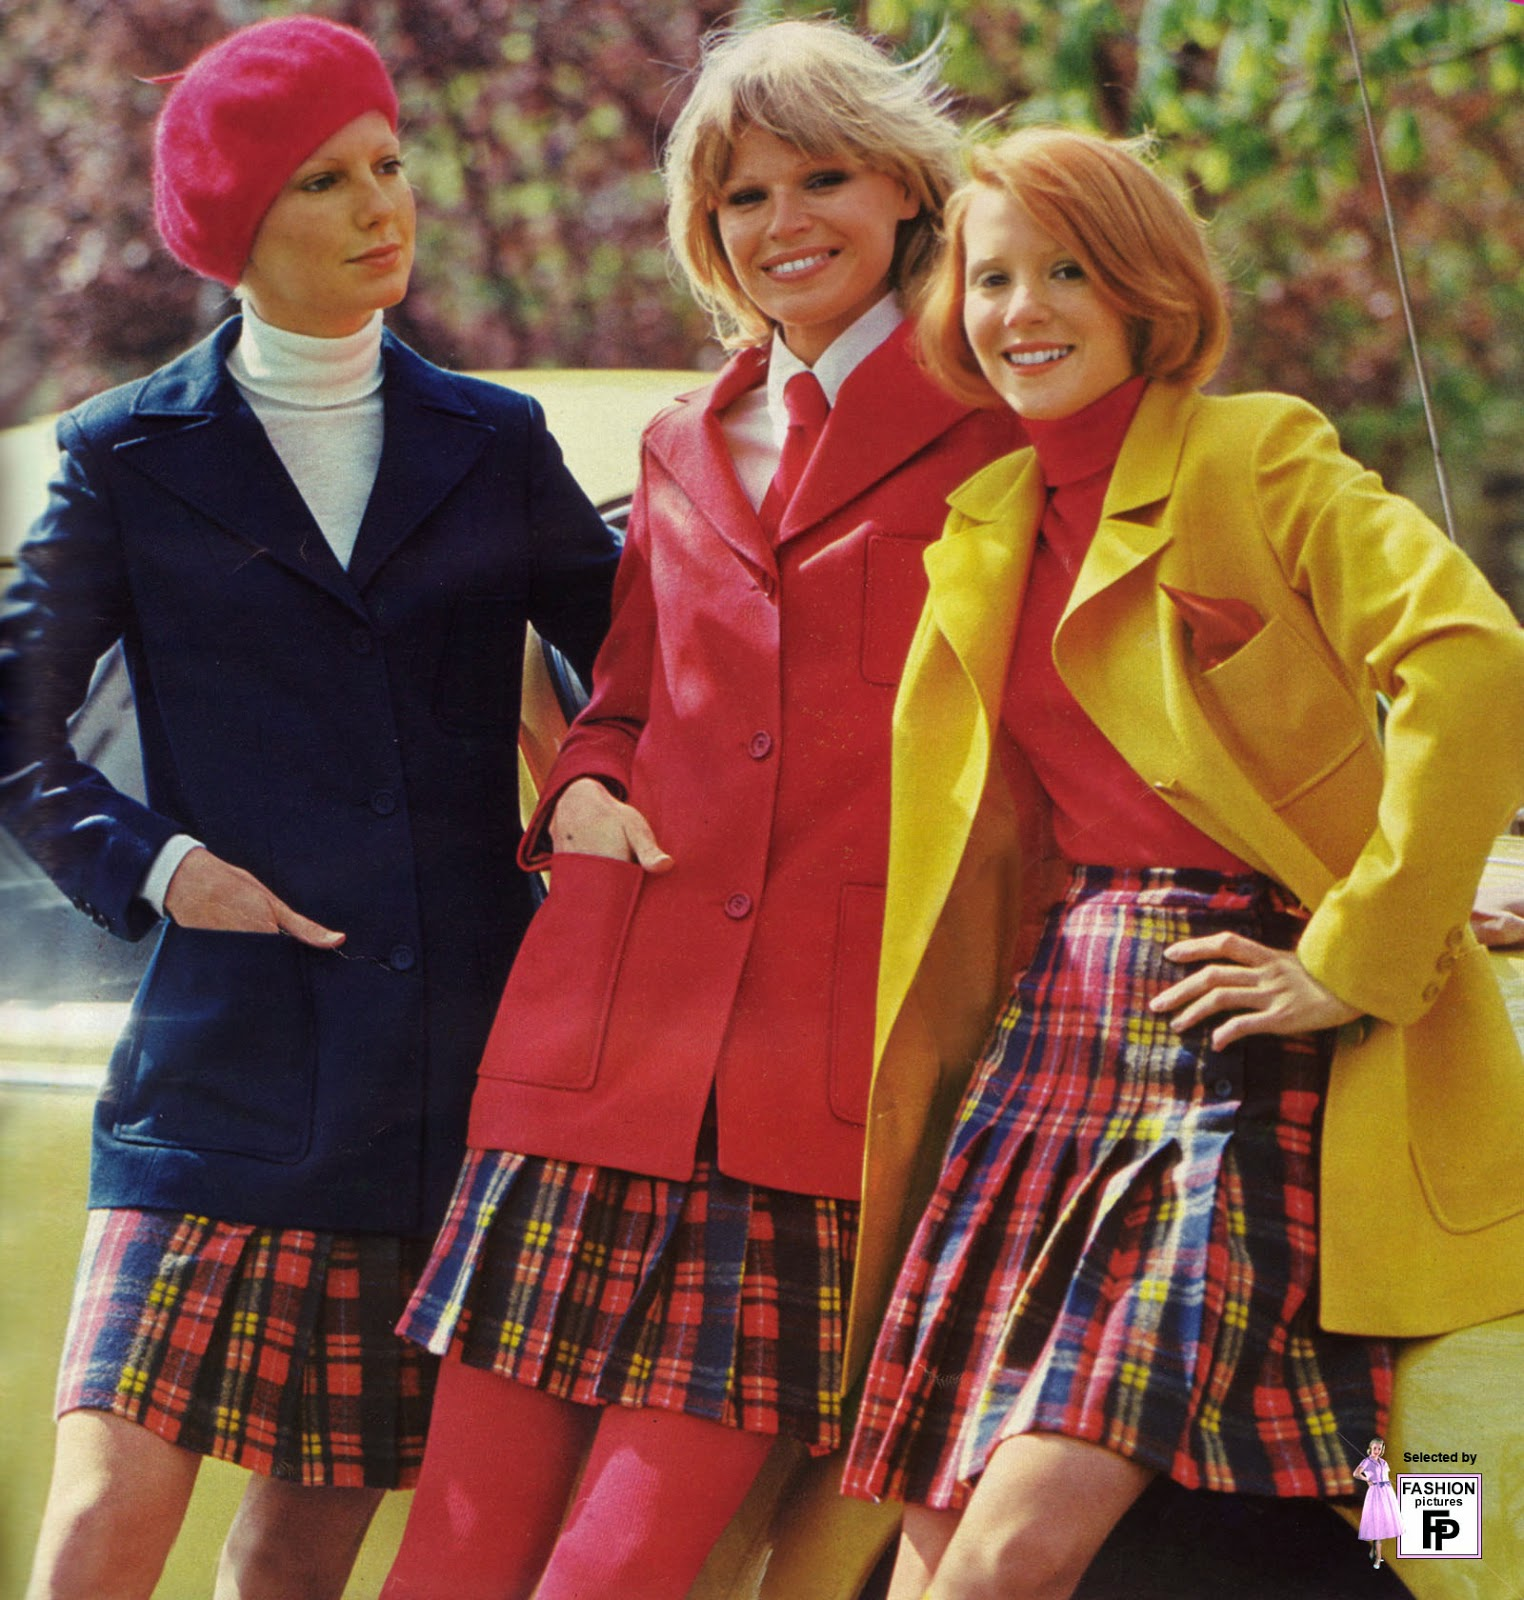 Colorful Women's Street Fashions in the Early 1970s ...1970s Womens Fashion Trends